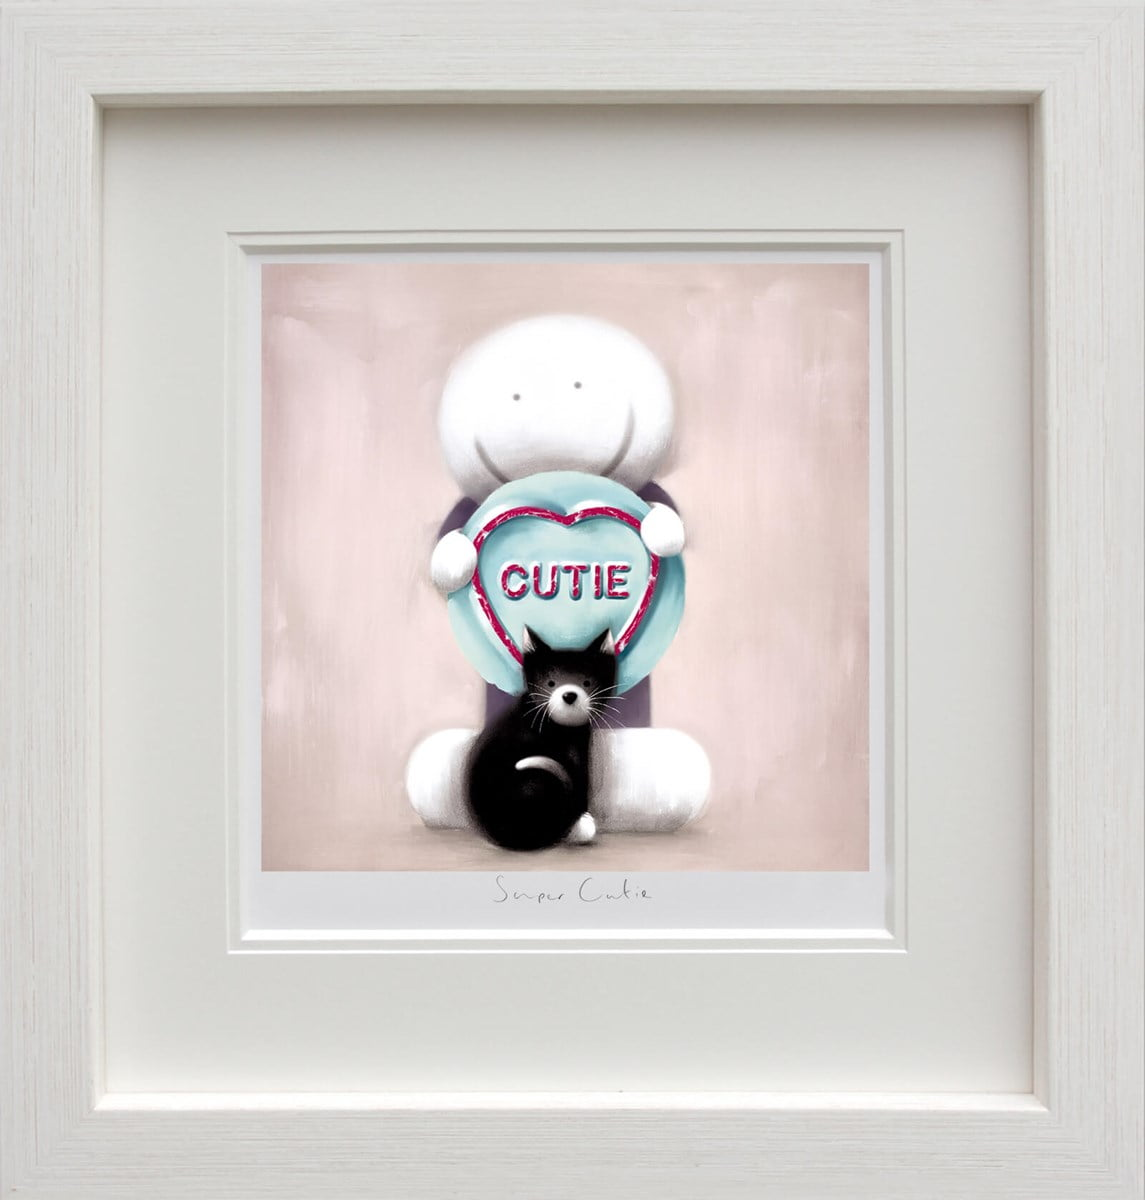 Super Cutie ~ Doug Hyde